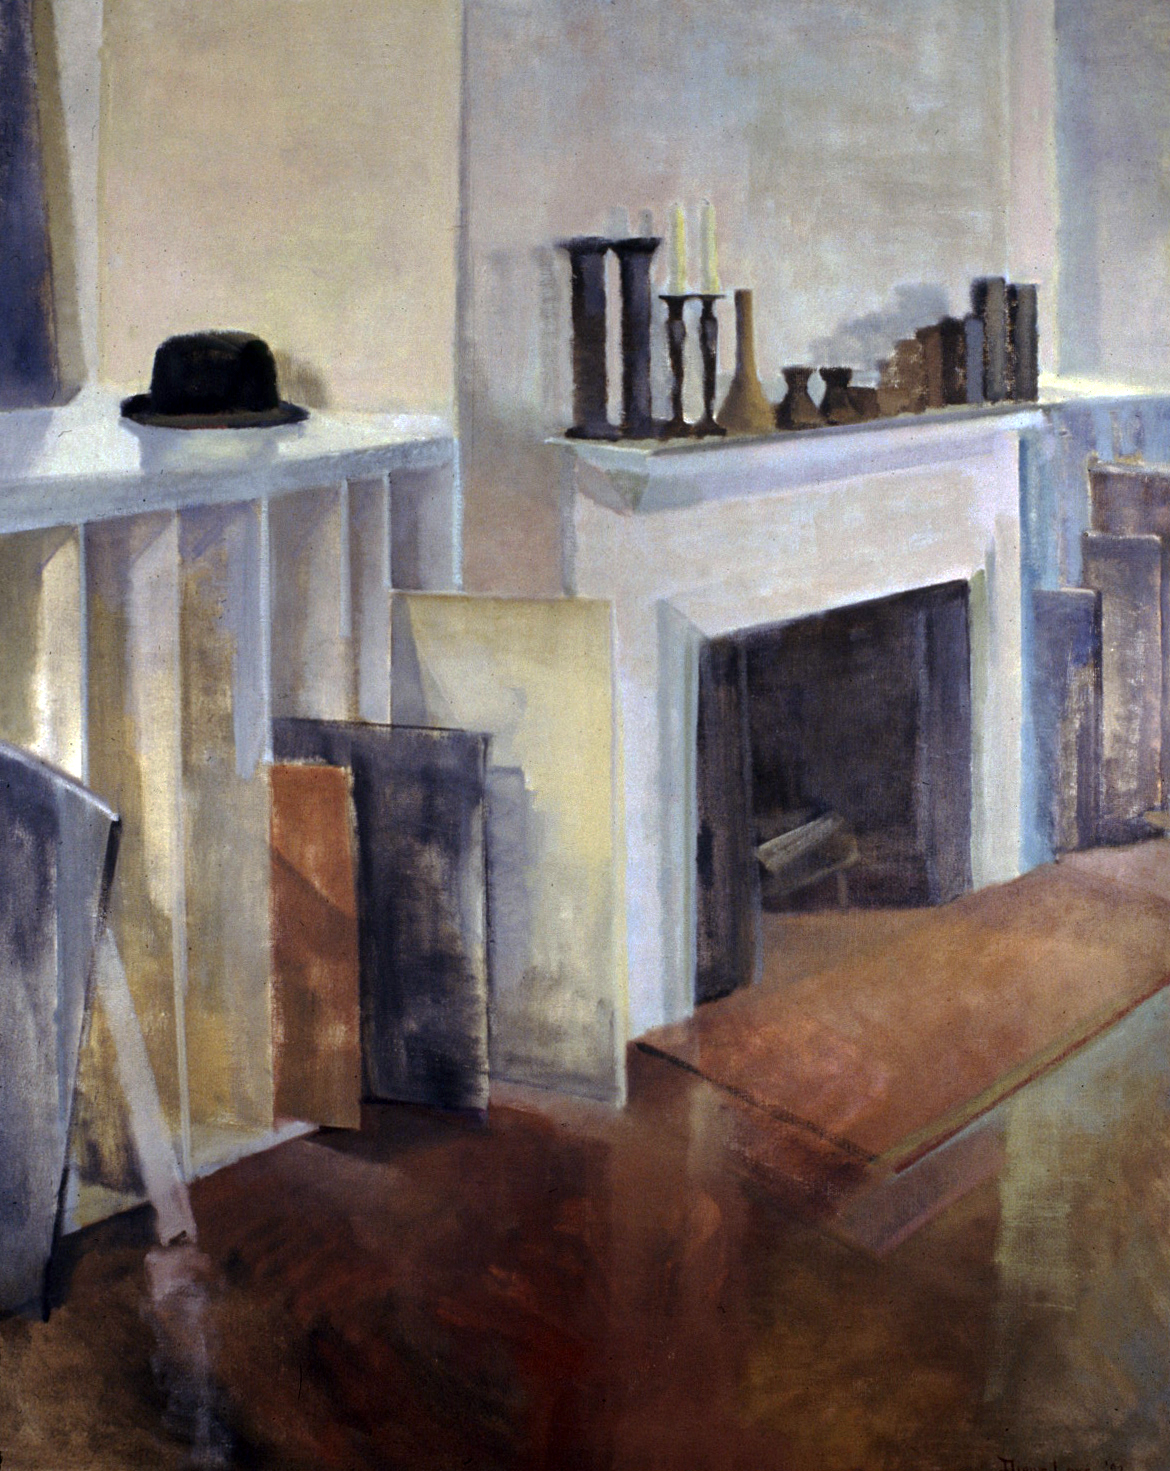 FRENCH IMPRESSION- oil on canvas- 60 x 48- 1992